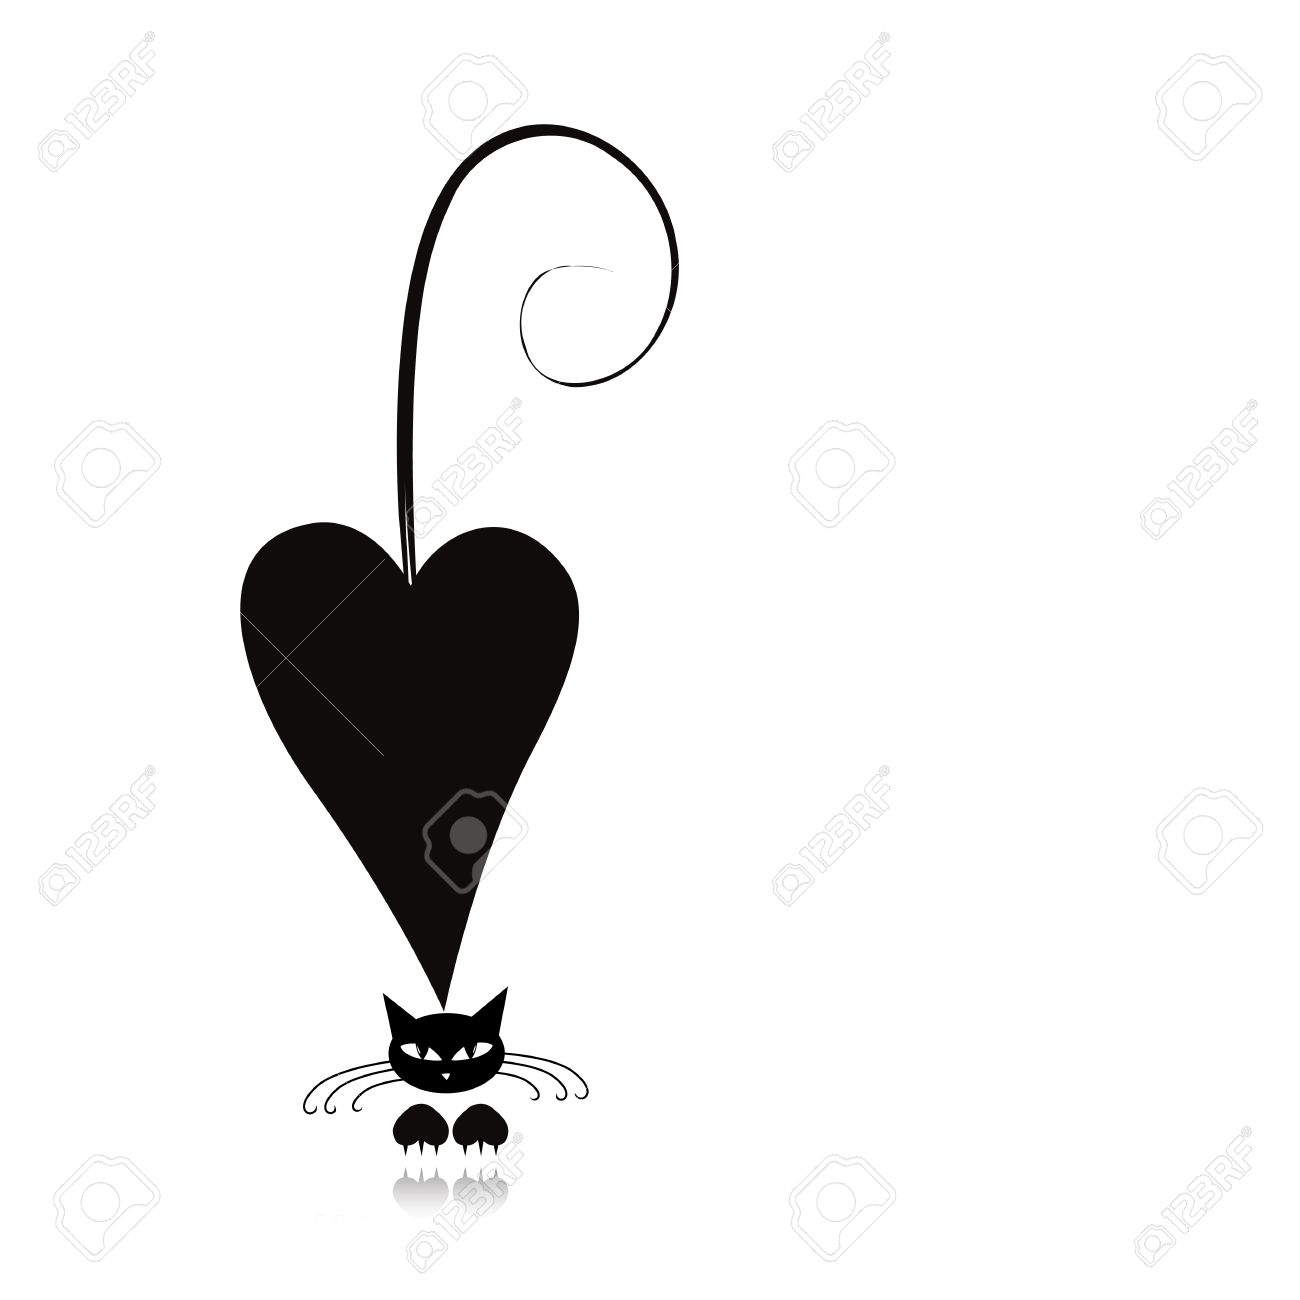 Cat in love, black silhouette for your design Stock Vector - 30683693